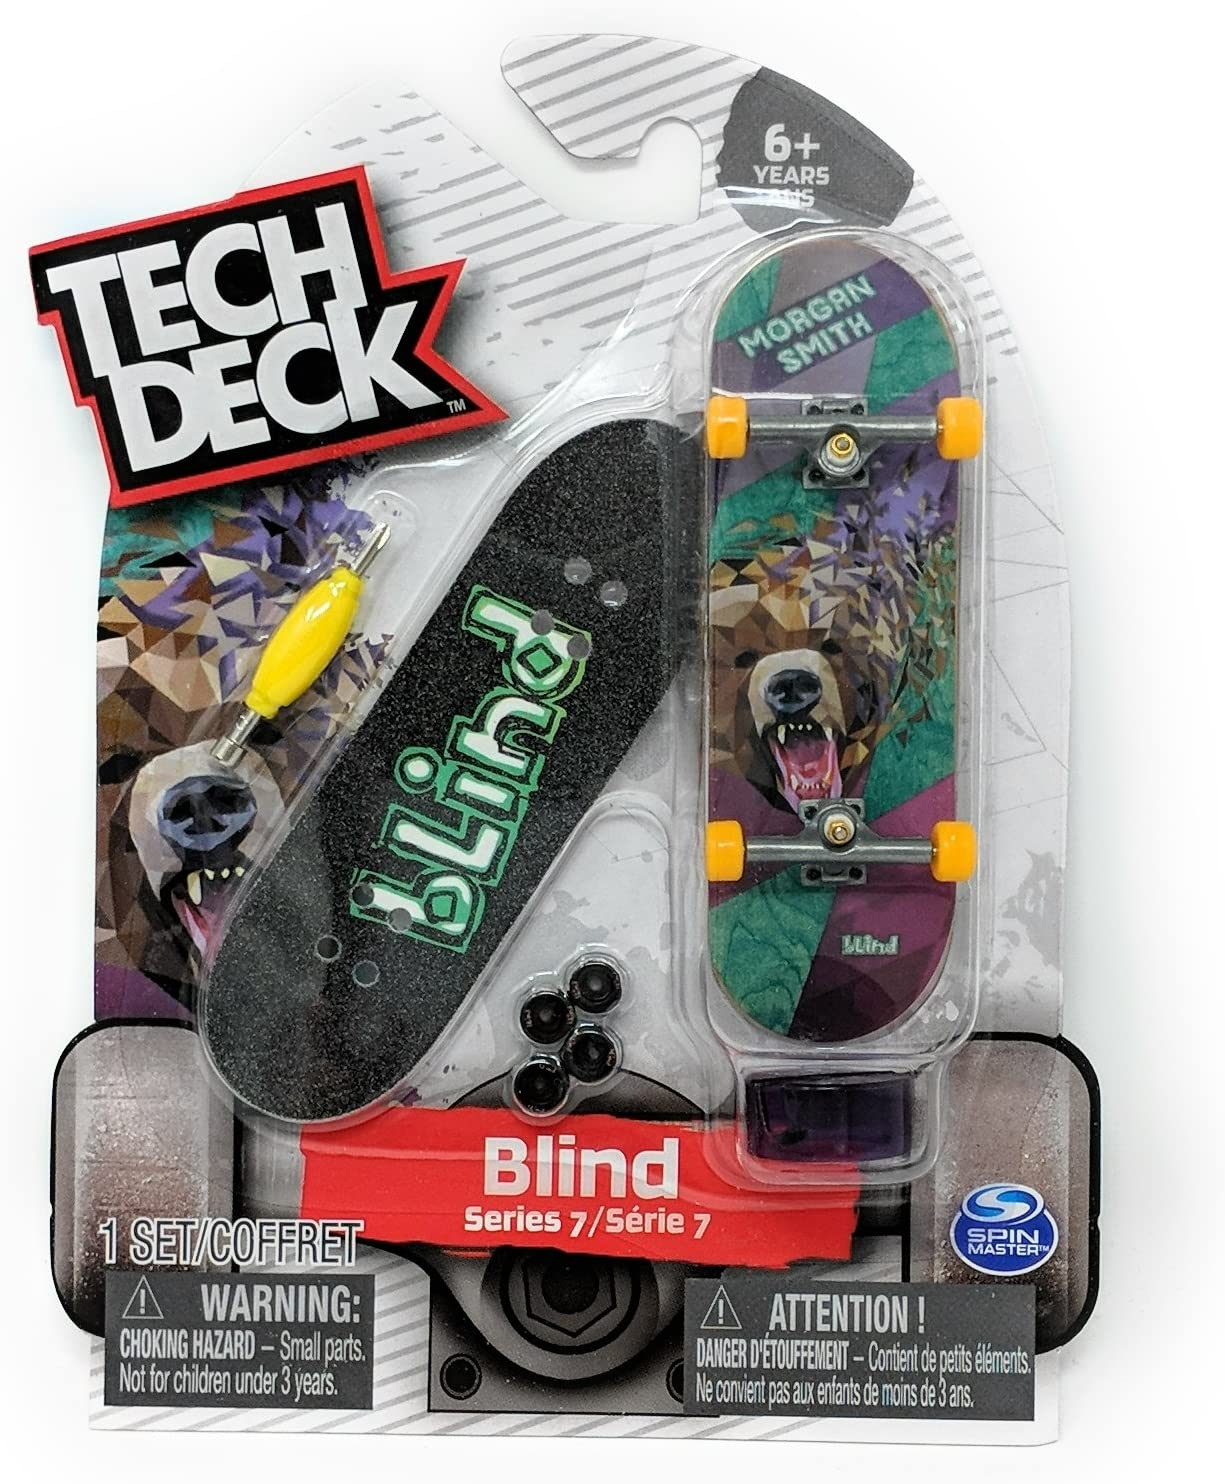 Amazon Com Tech Deck Blind Series 7 Morgan Smith Bear Rare Fingerboard Skateboard Mini Toy Skate Board Toys Games